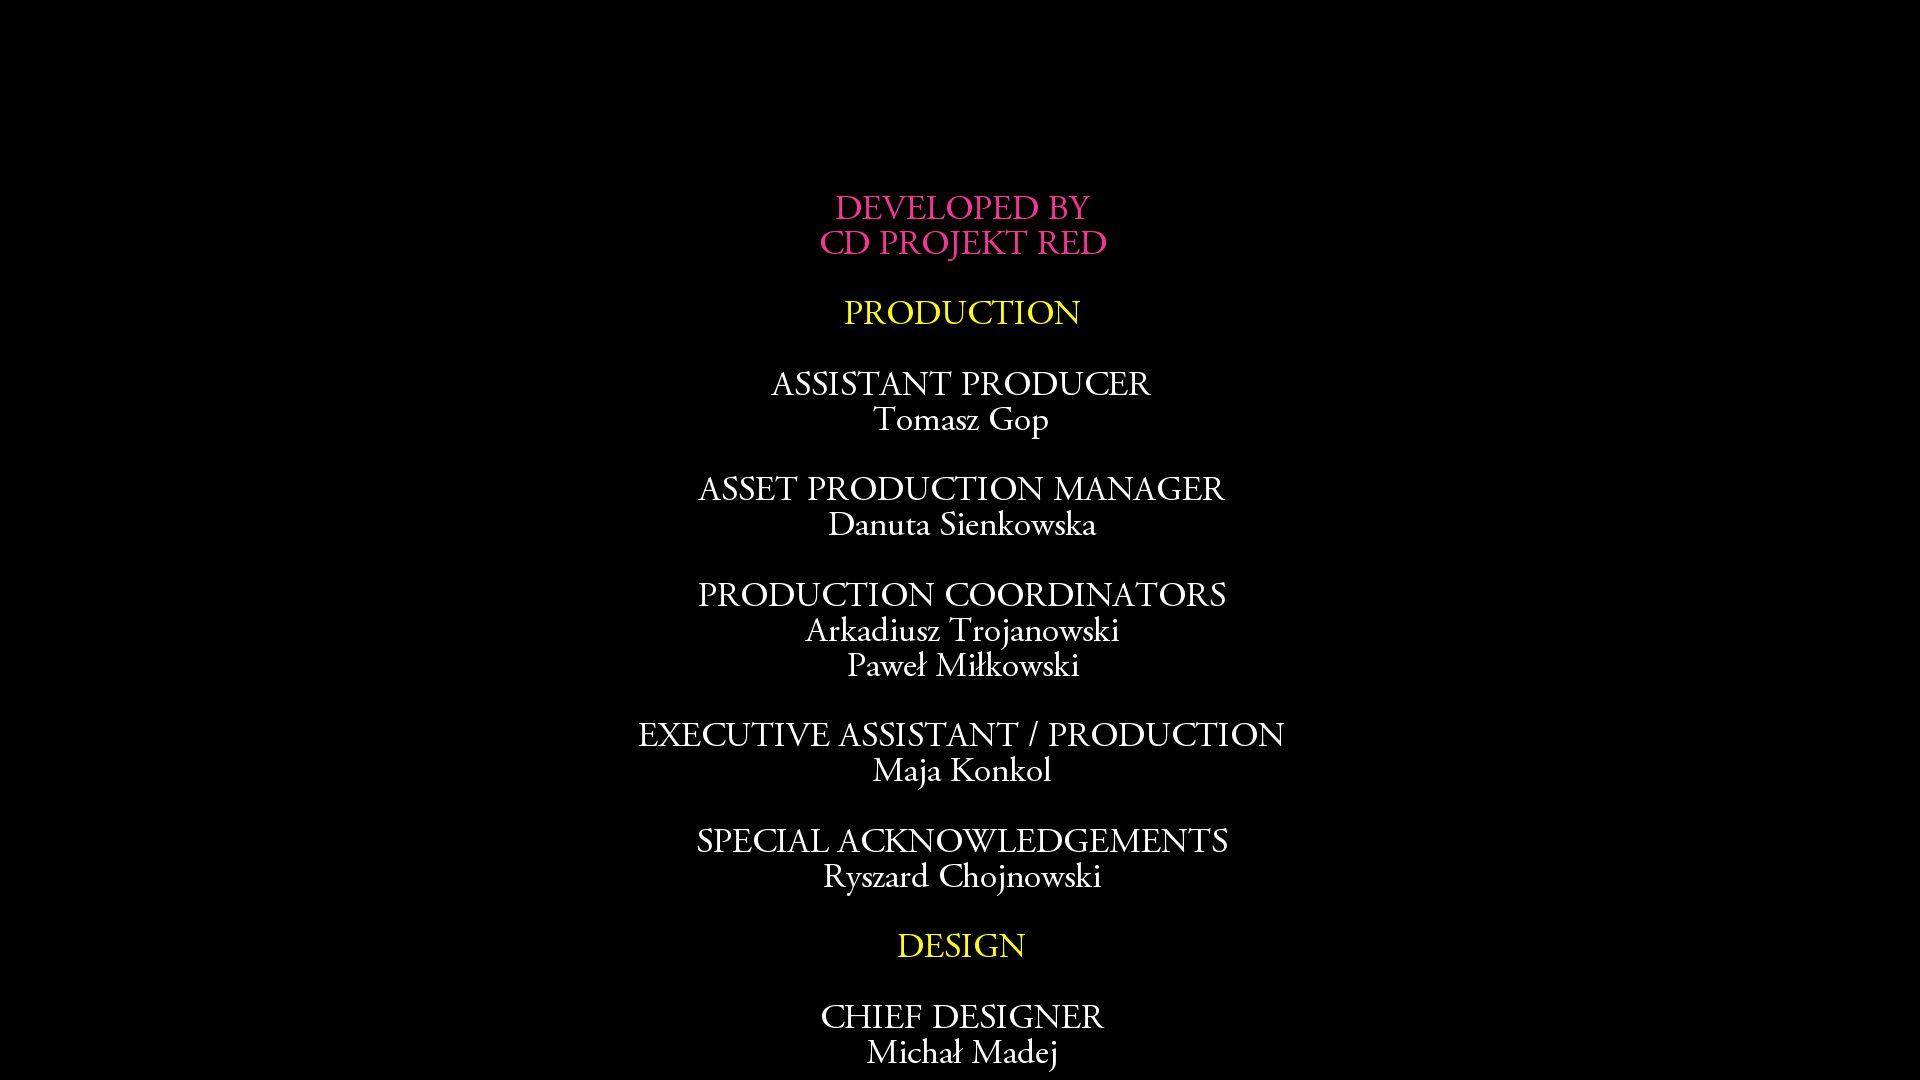 End credits for The Witcher